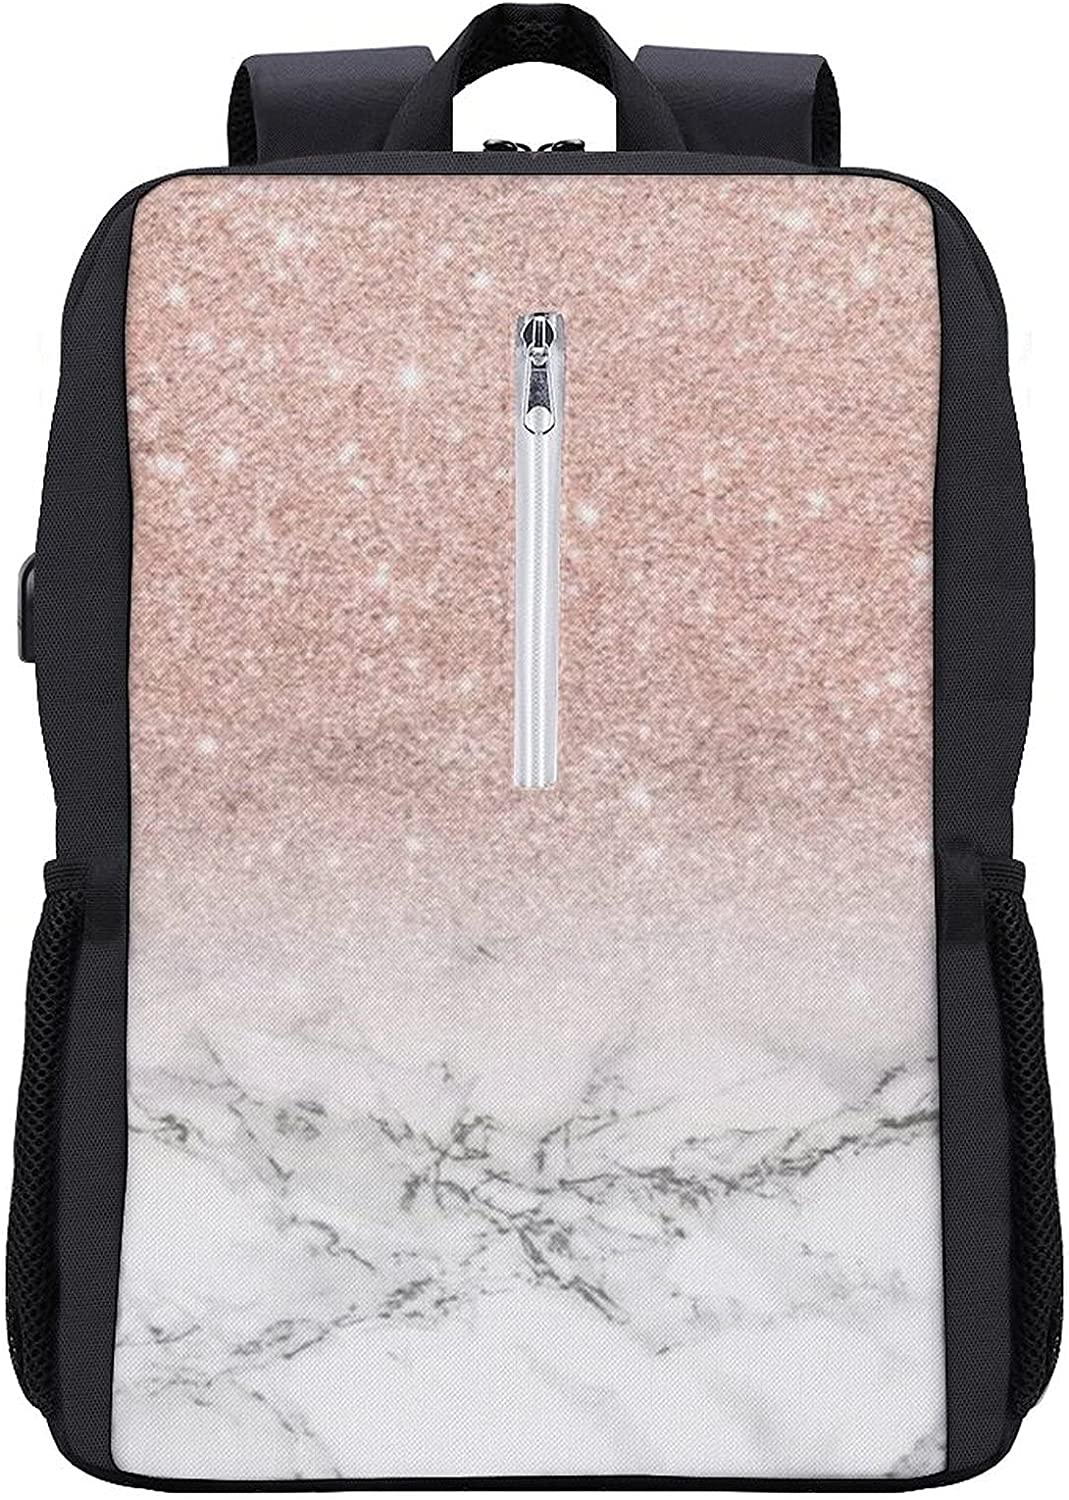 Fashion Double Backpack With Max 43% OFF USB School Sales for sale Bag Interface 16 Bookbag